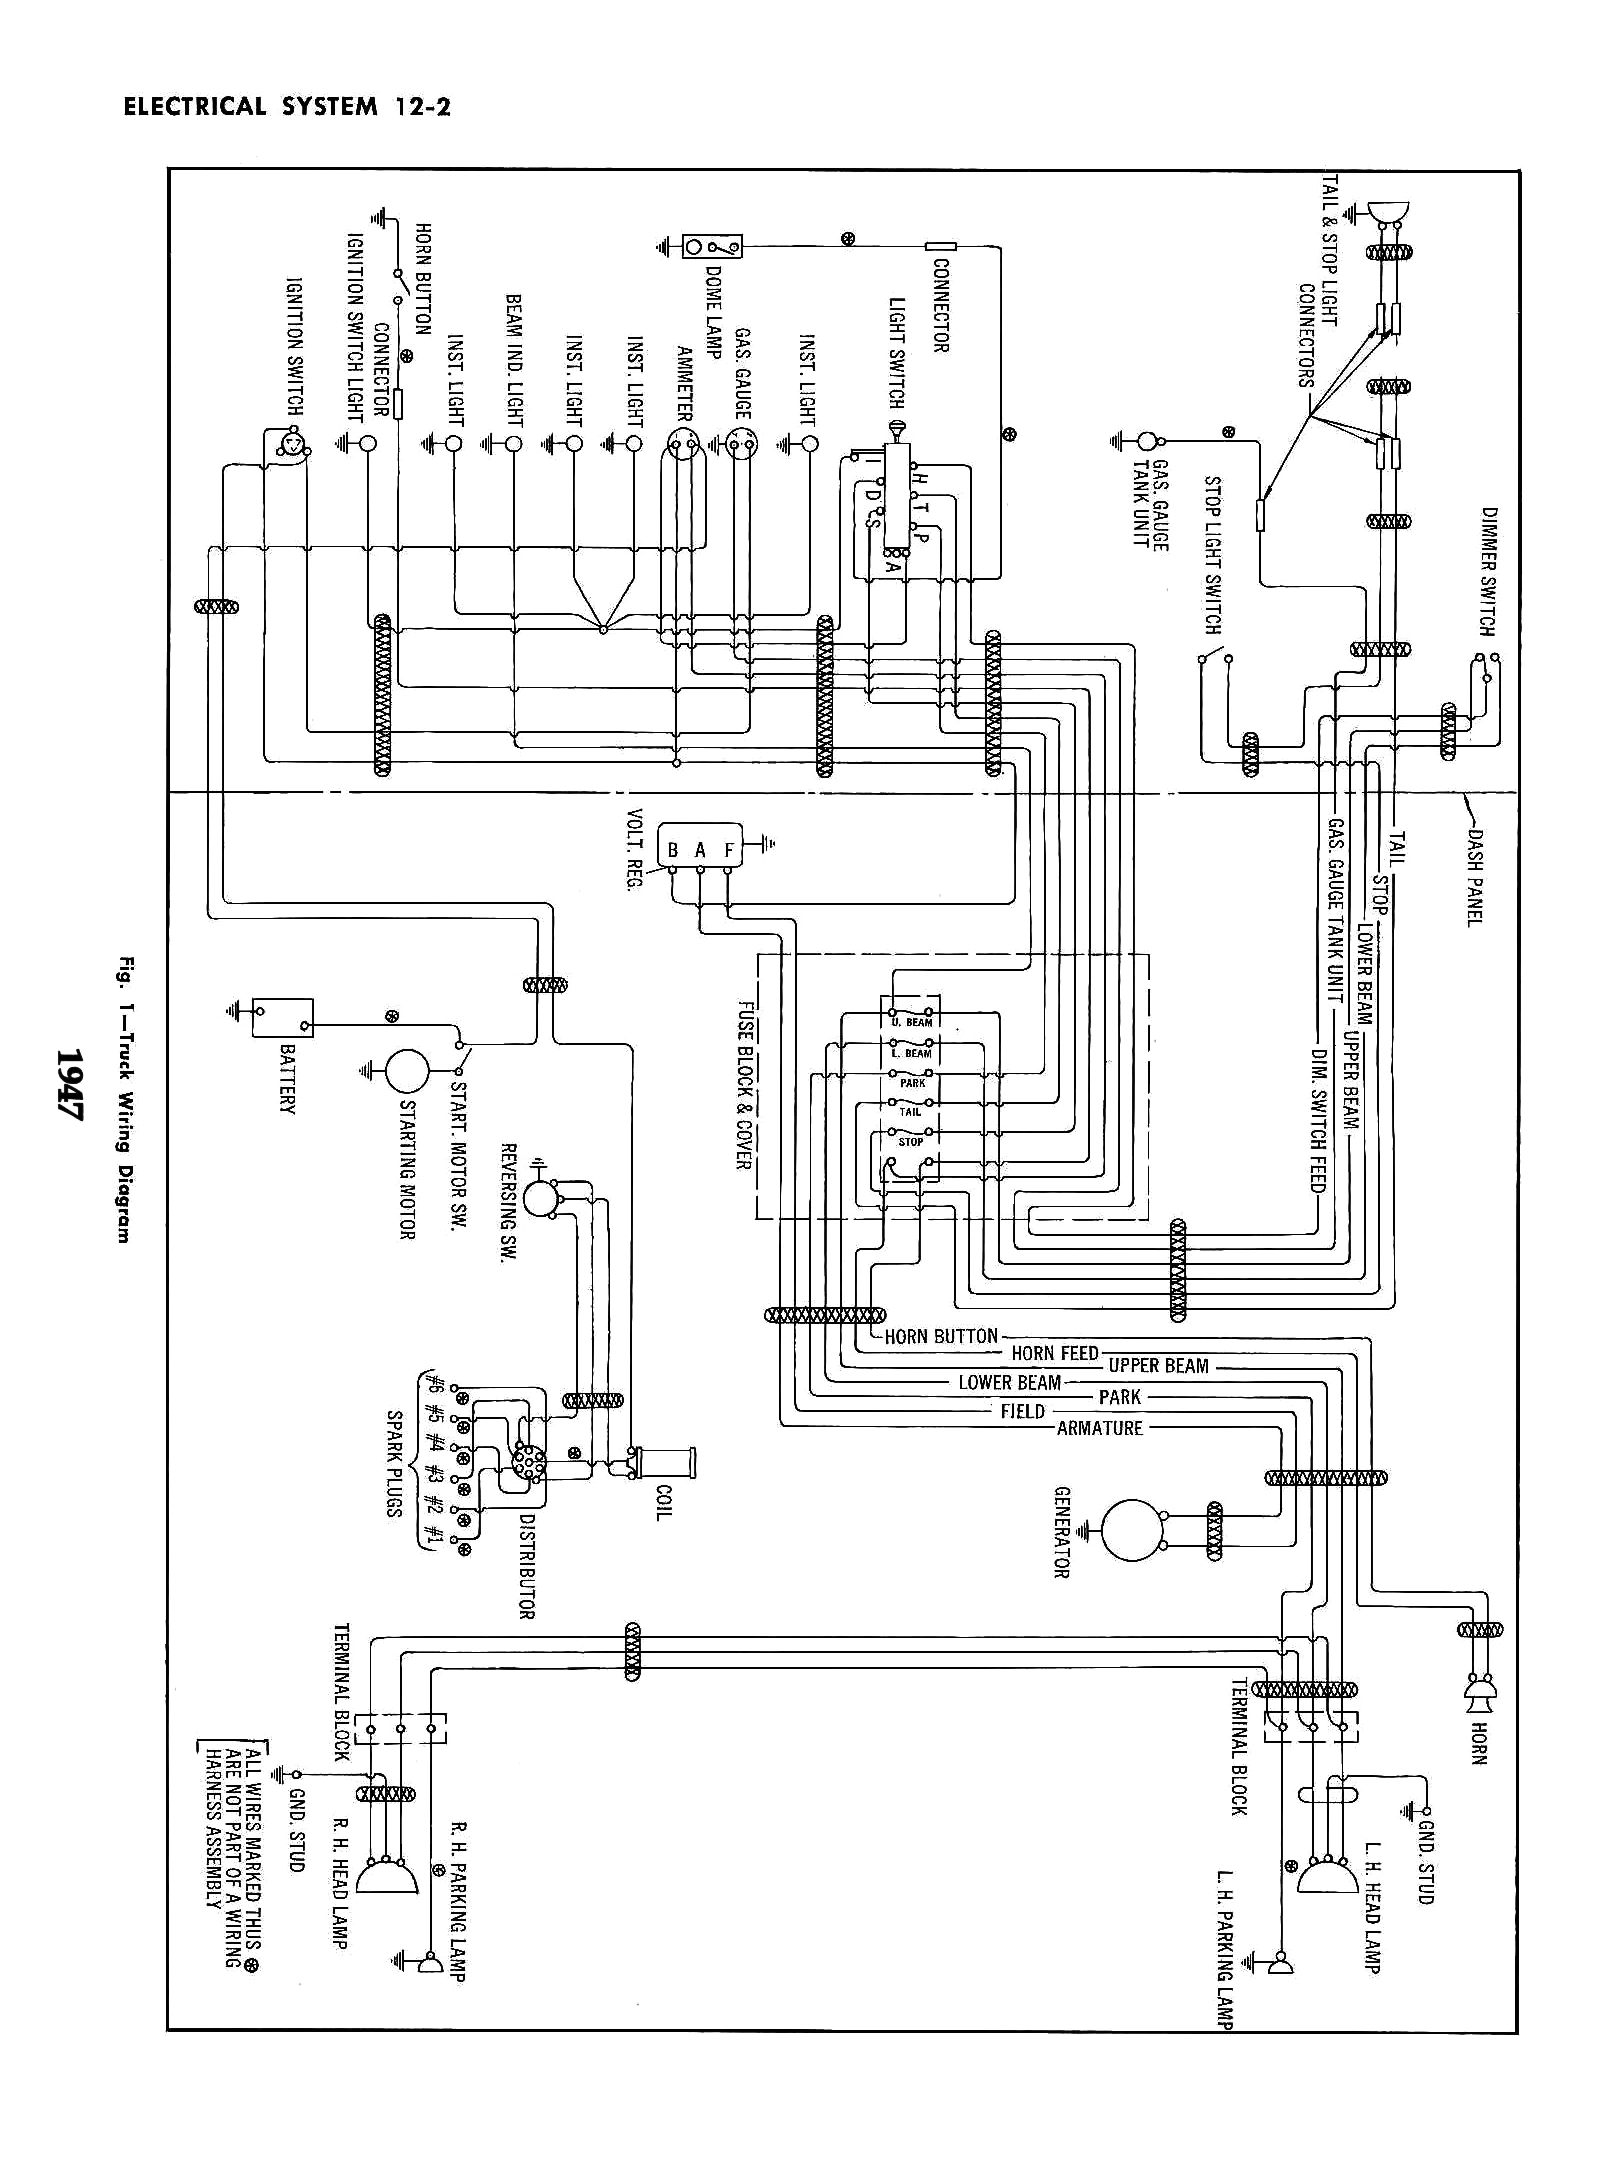 hight resolution of 1953 willys wiring diagram simple wiring schema 1959 willys wagon wiring diagram 1953 jeep wiring diagram